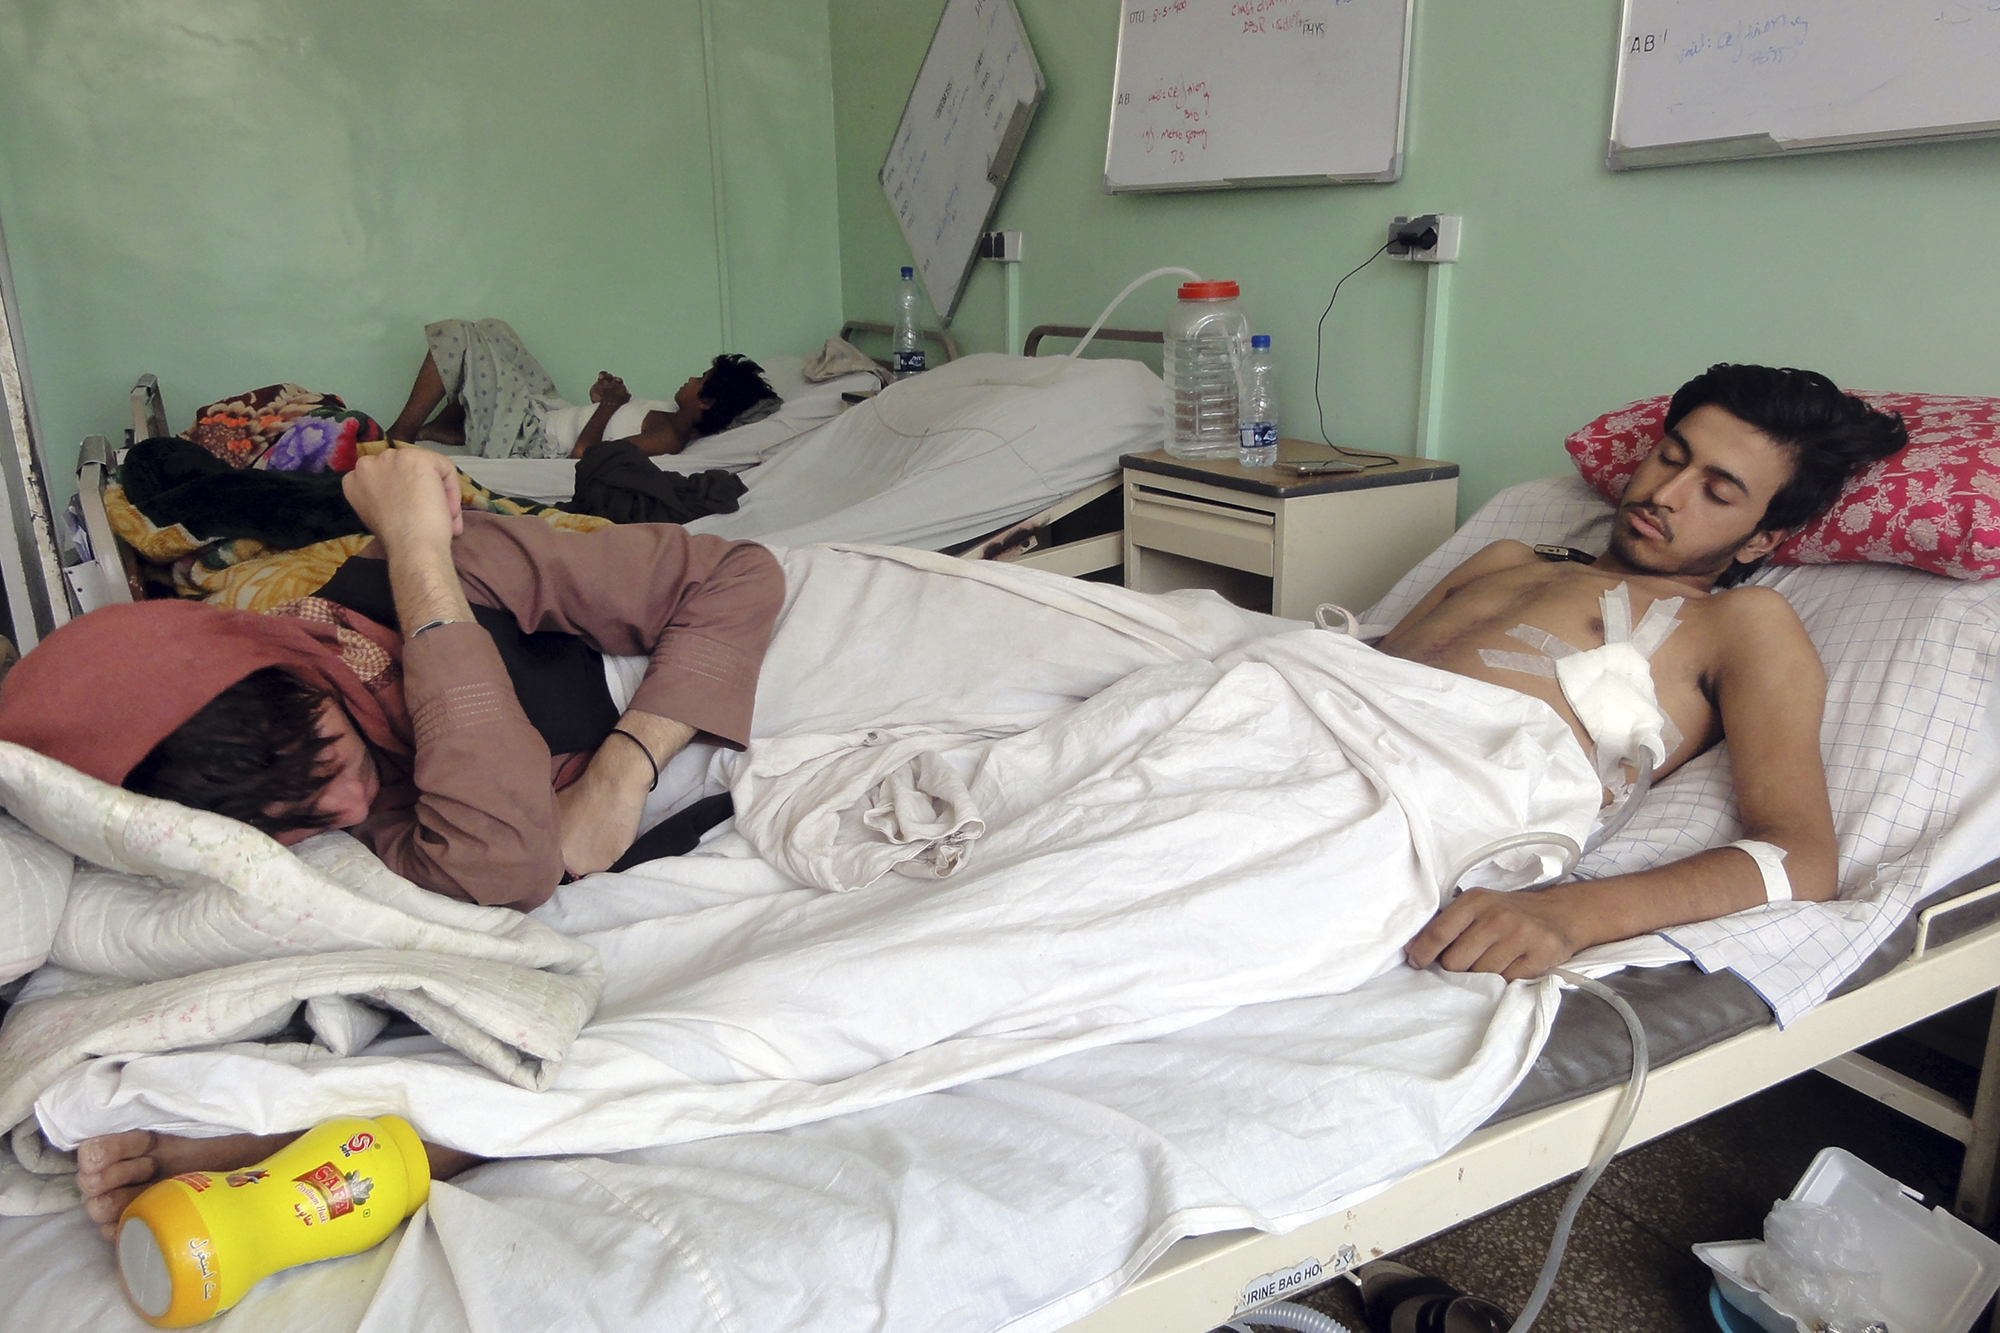 Afghans wounded in fighting between the Taliban and the government in Kandahar province.